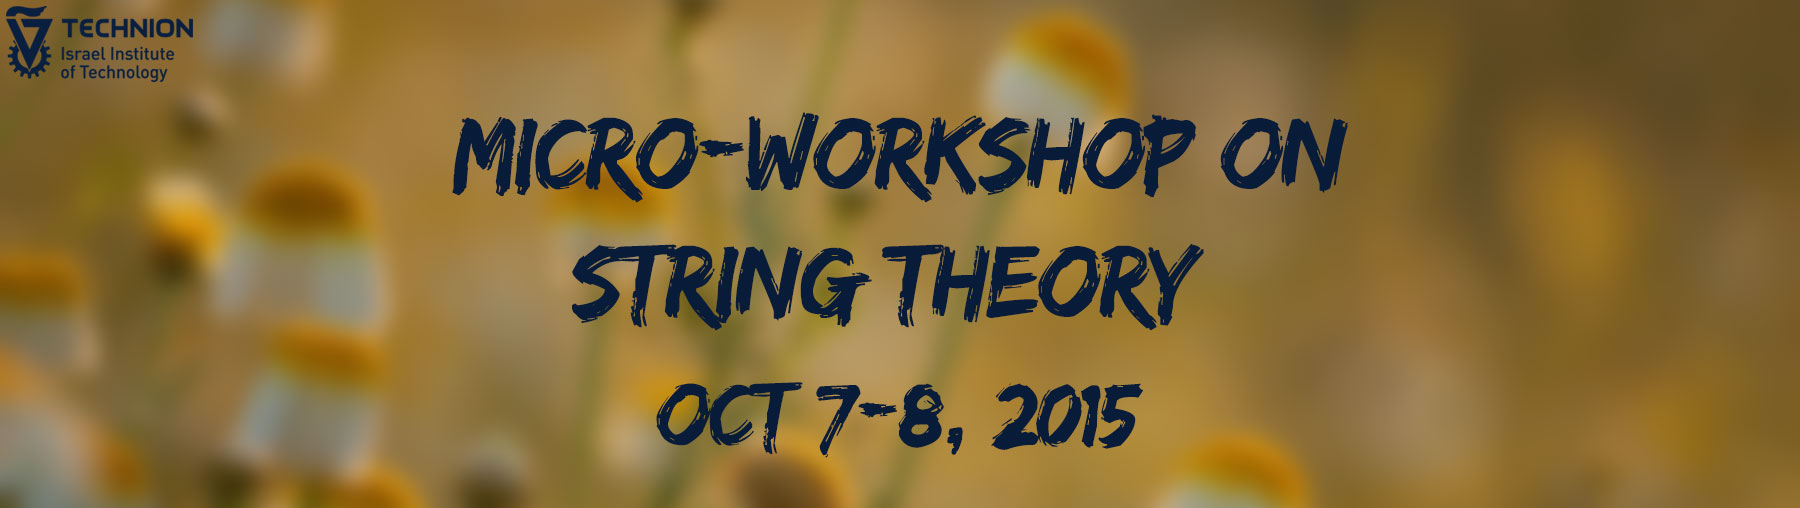 micro-workshop on string theory, october 7-8 2015